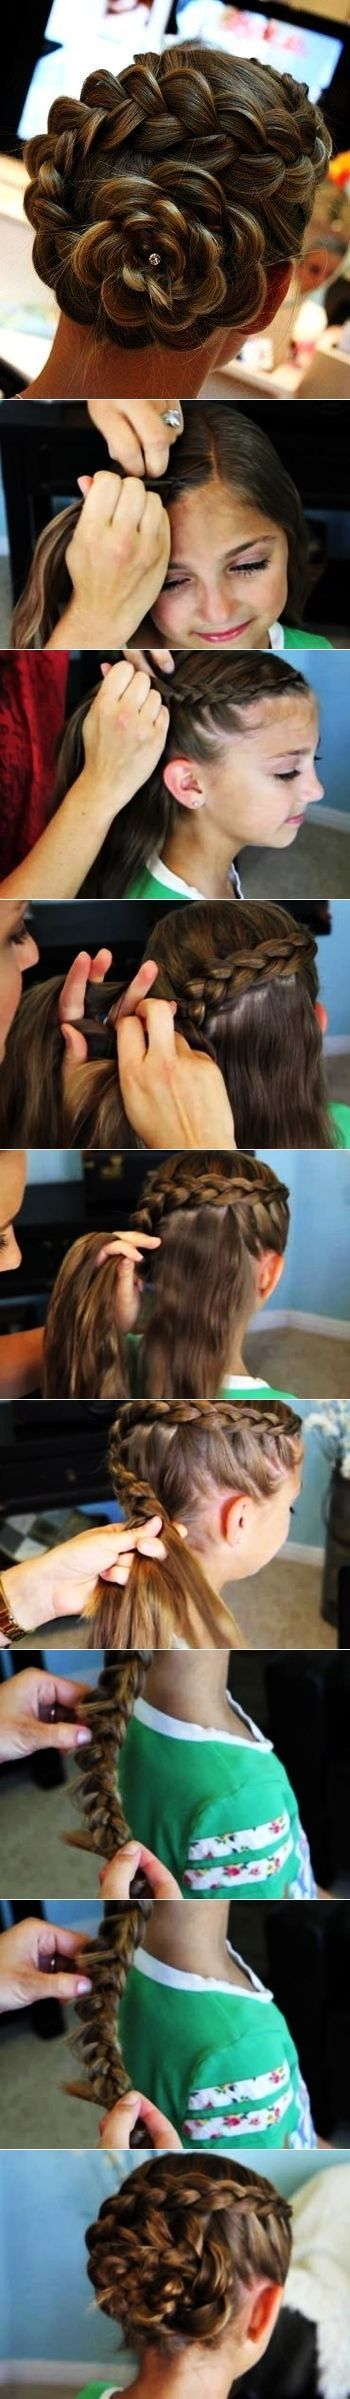 DIY Flower Hair beauty long hair updo braids how to diy hair hairstyles tutorials hair tutorials easy hairstyles